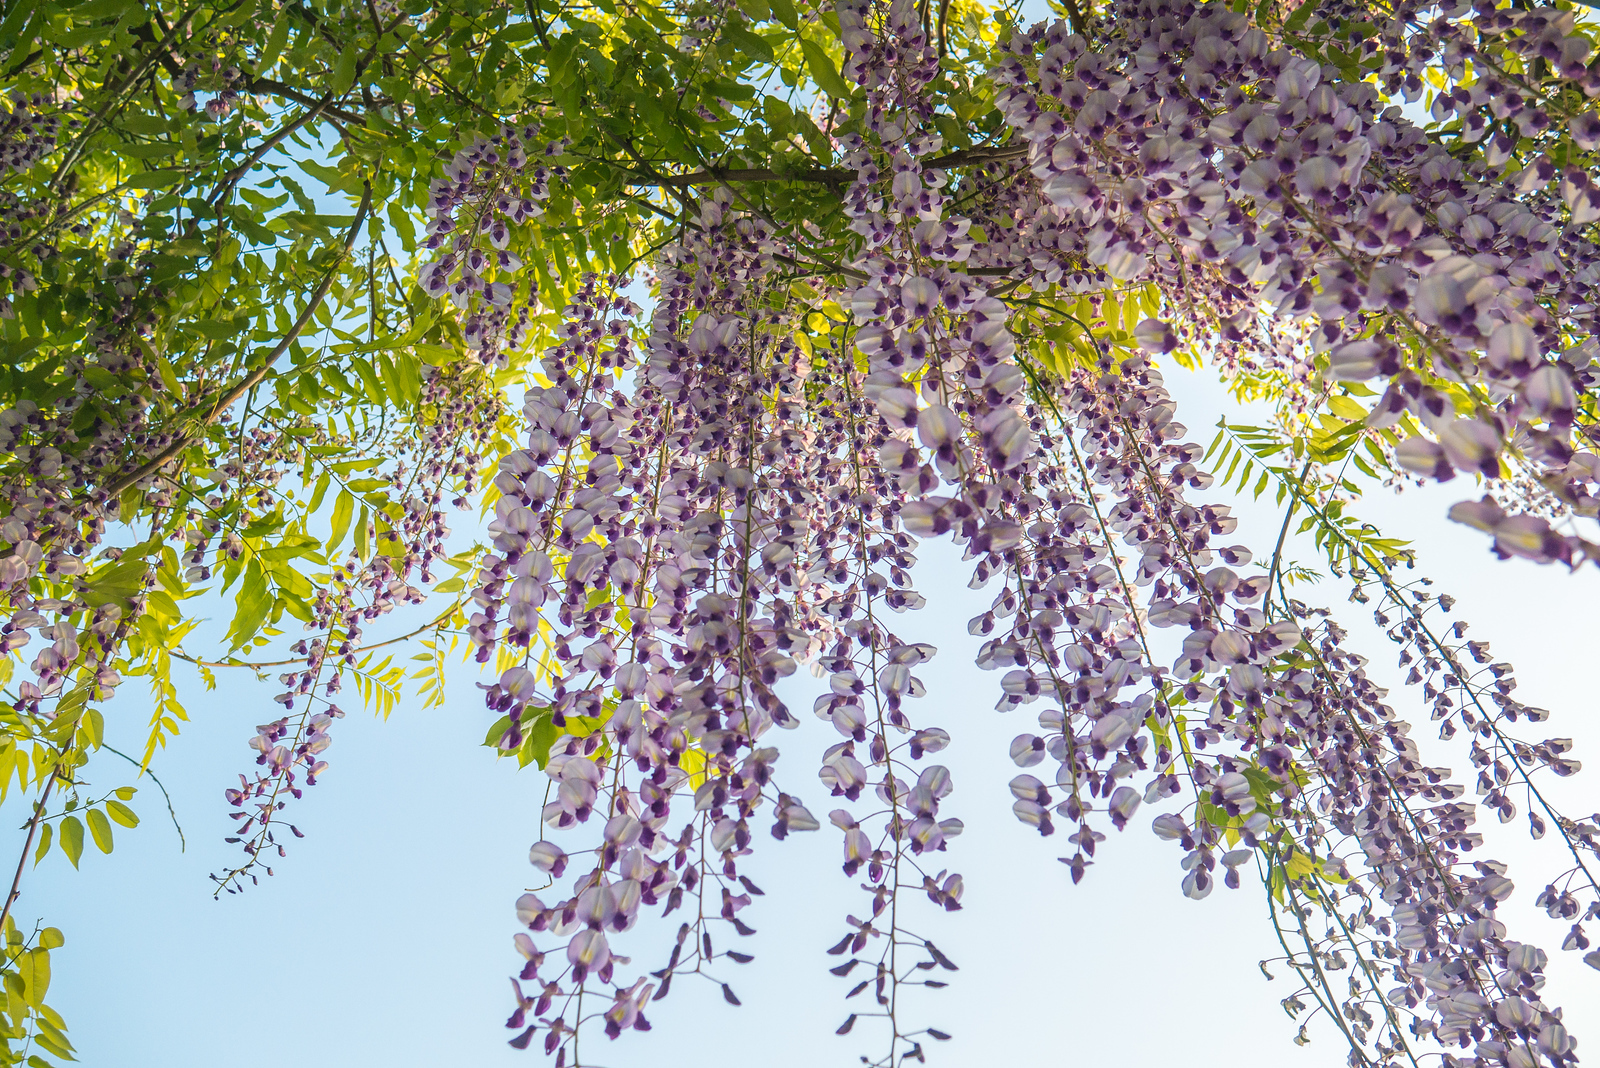 wisteria at Tsurugaoka Hachimangū shinto shrine